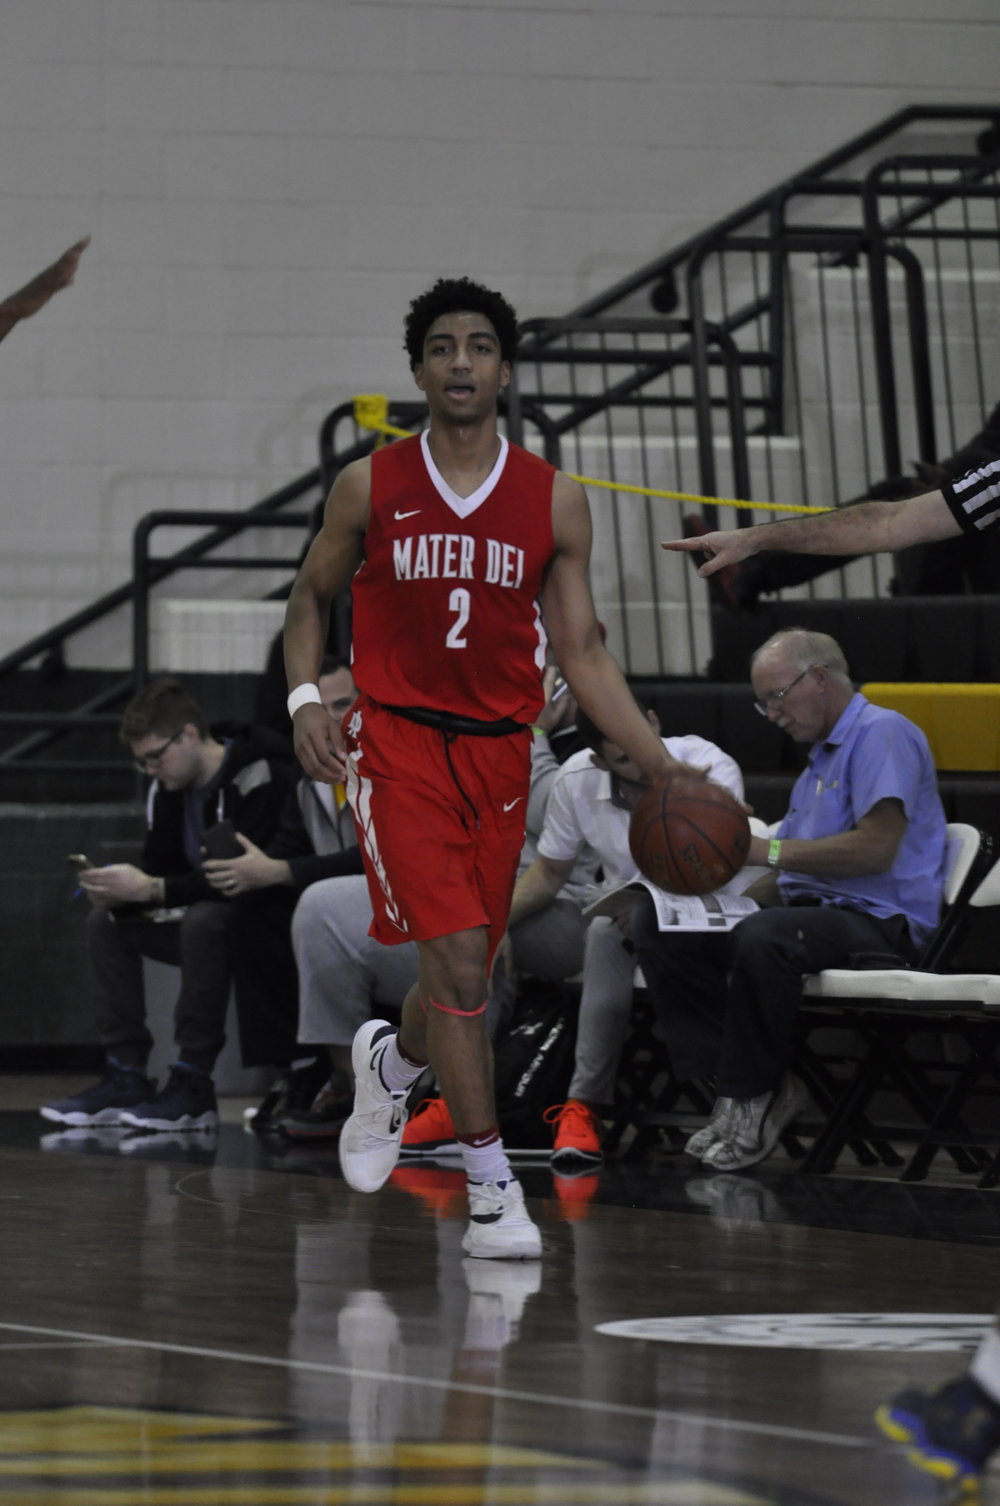 Mater Dei forward Justice Sueing scored 12 points in a semifinal win over Corona Centennial to help the Monarchs to a spot in Friday's Classic at Damien championship game against the host Spartans.